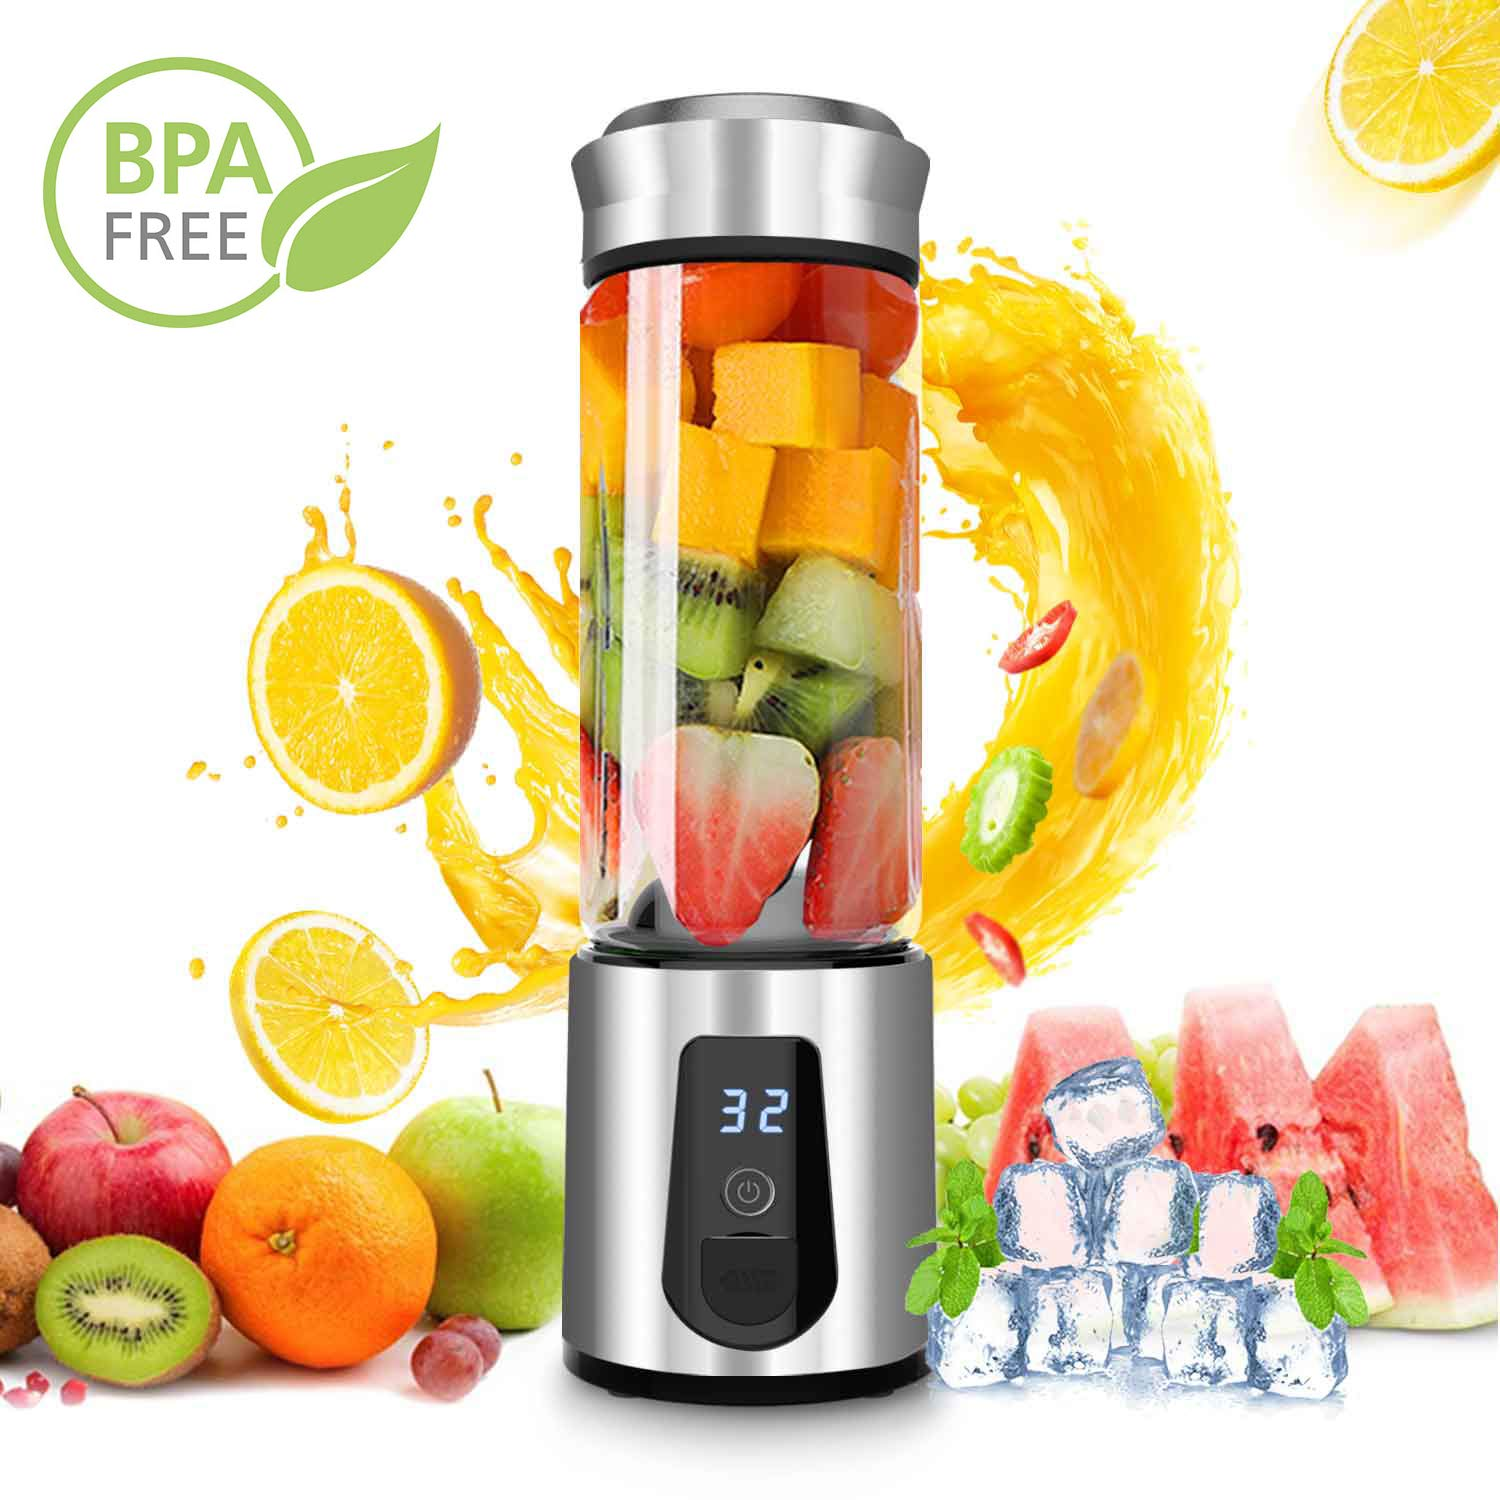 Personal Smoothie Blender,DOUHE Rechargeable Portable Blender Small Blender Mini USB Juicer Mixer -Shakes,Smoothies,Baby Food - Outdoor Travel Home Office,High Borosilicate Glass,BPA Free,Cordless by DOUHE (Image #1)